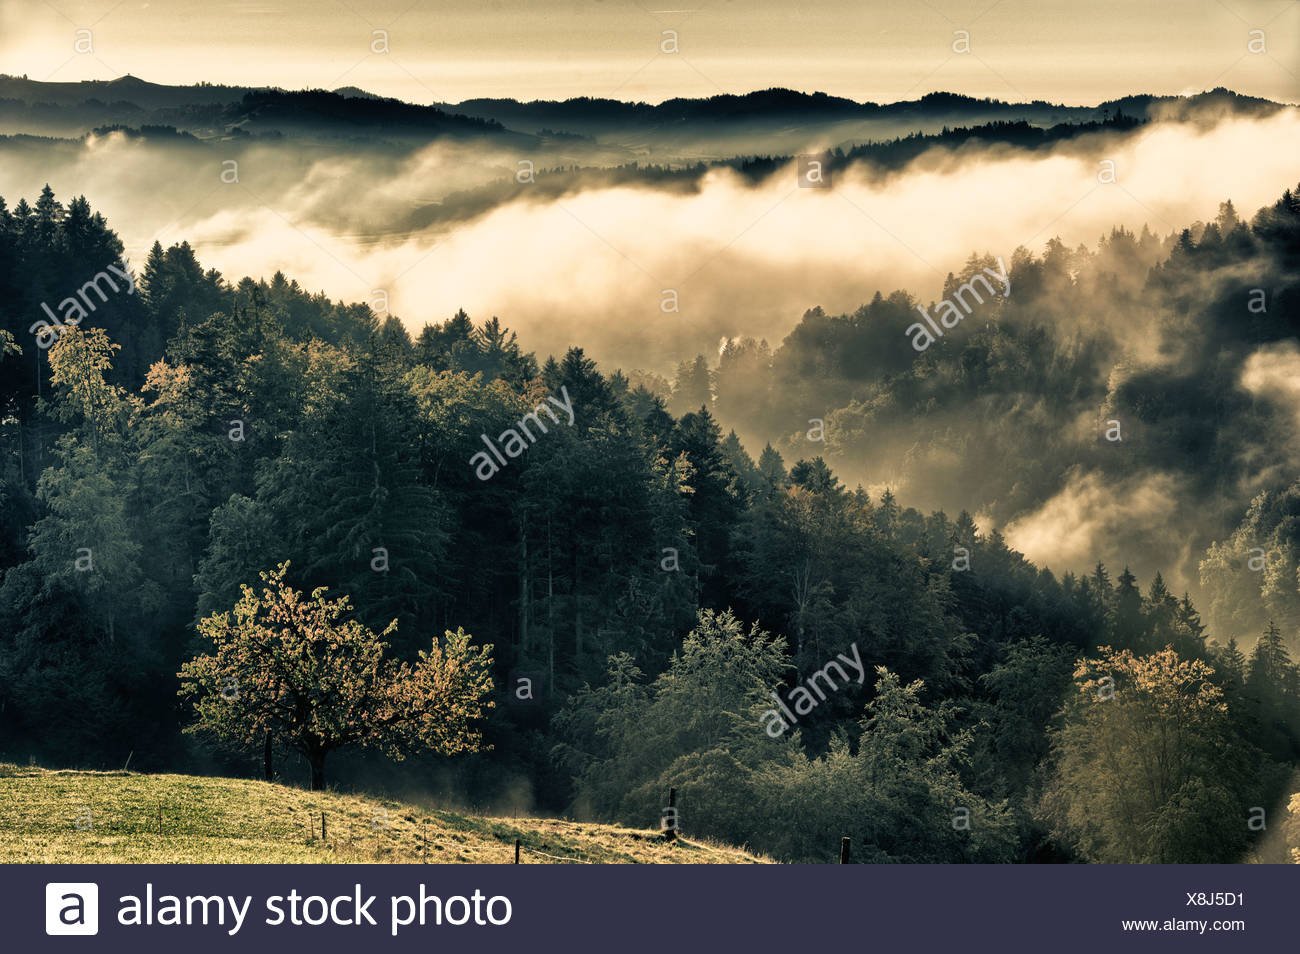 mountain forest, Emmental, autumn, fall, canton Bern, landscape, scenery, early morning fog, mist, fog patches, waft of mist, wa - Stock Image